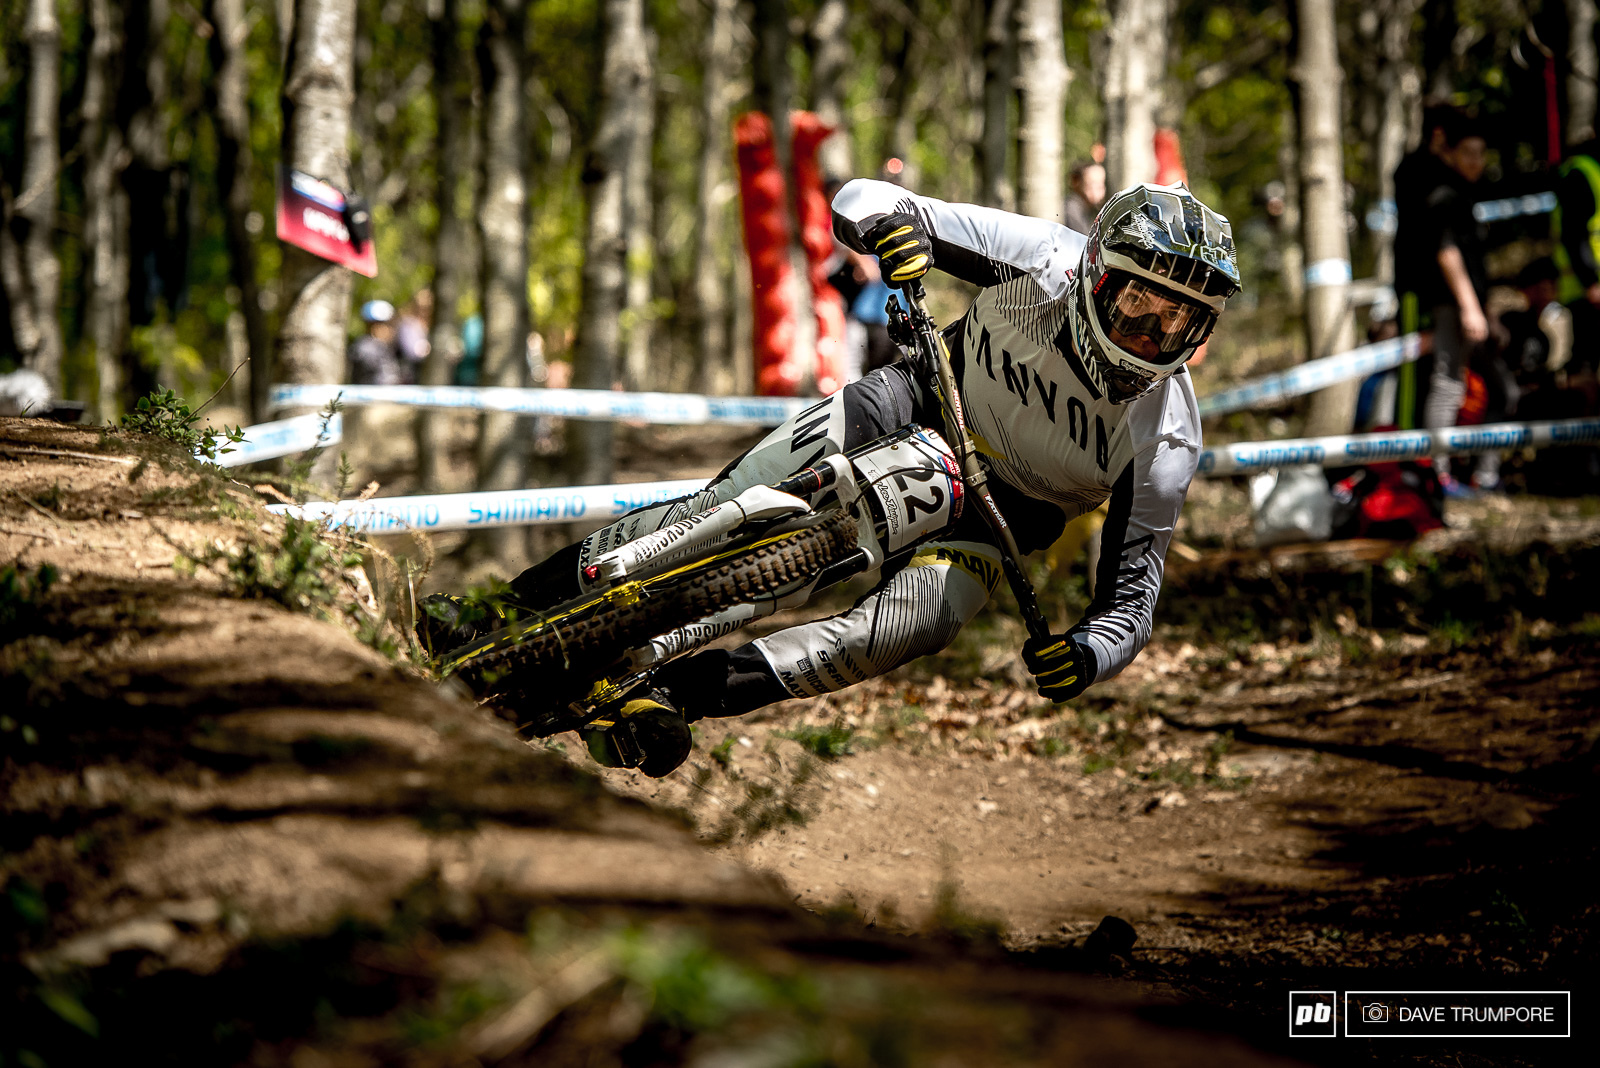 Mark Wallace leans his new Canyon through one of the fast berms half way down the track.